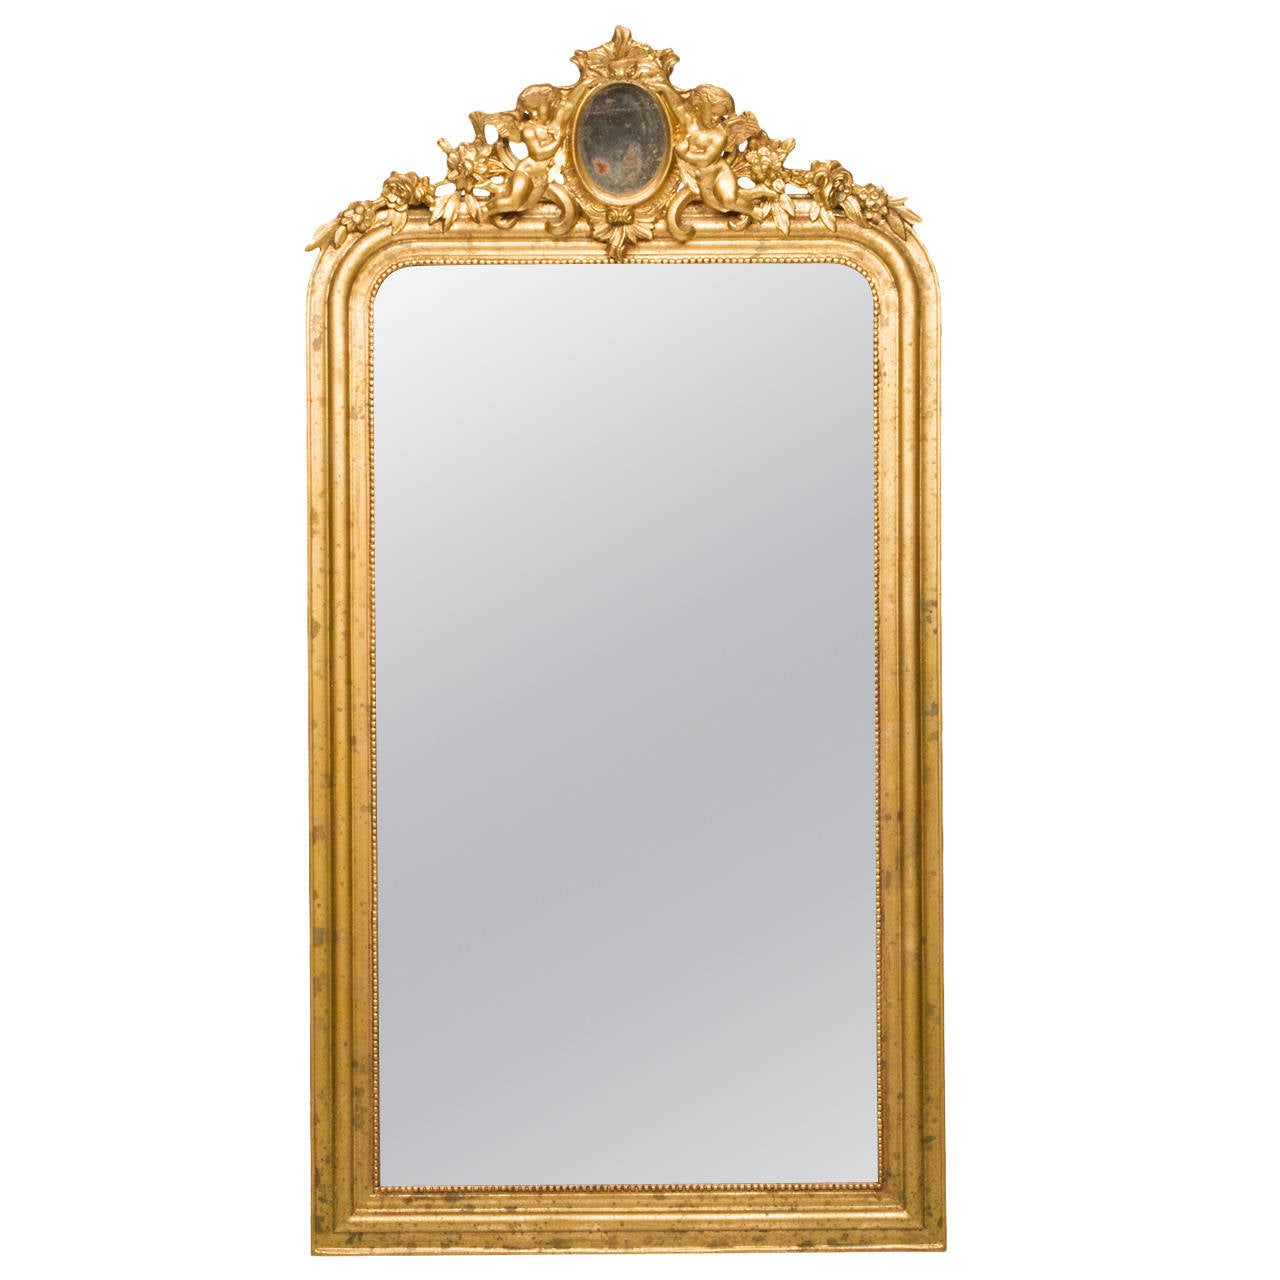 Louis philippe style antique mirror for sale at 1stdibs for Old style mirror